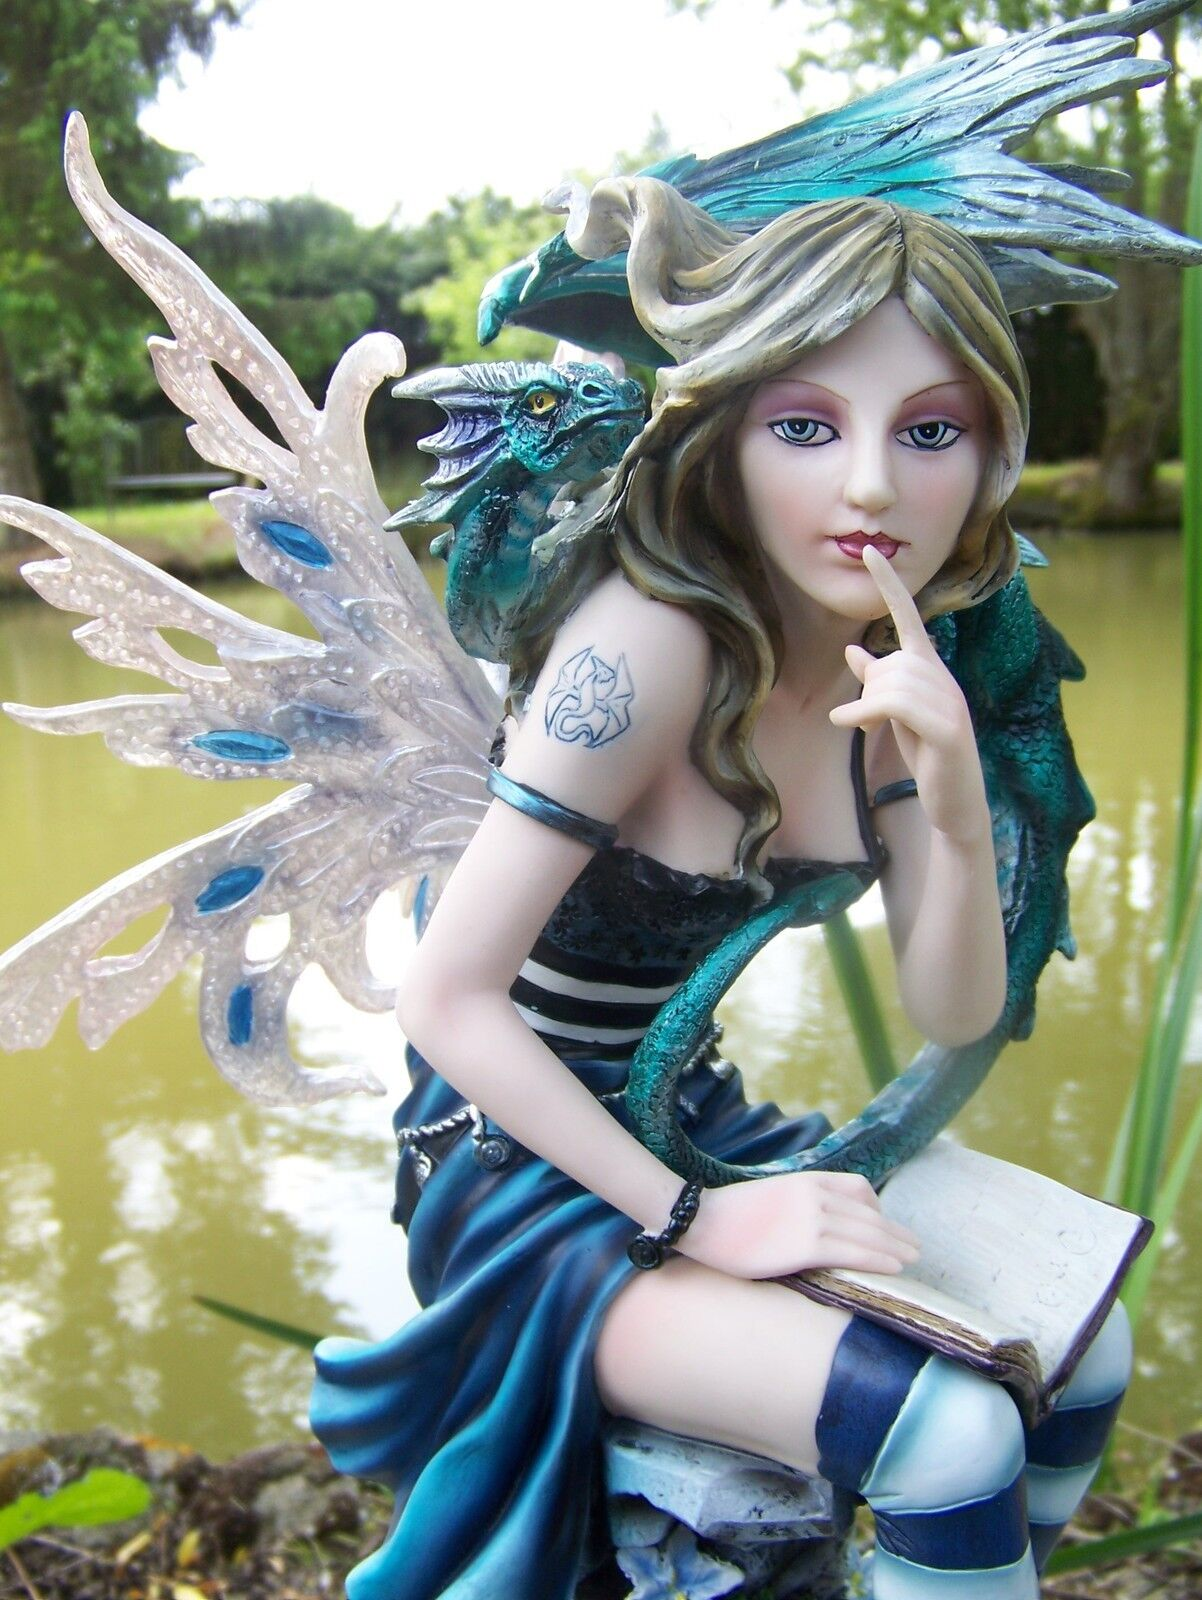 15312 large statuette figurine fee fairy elf dragon heroic fantasy gm